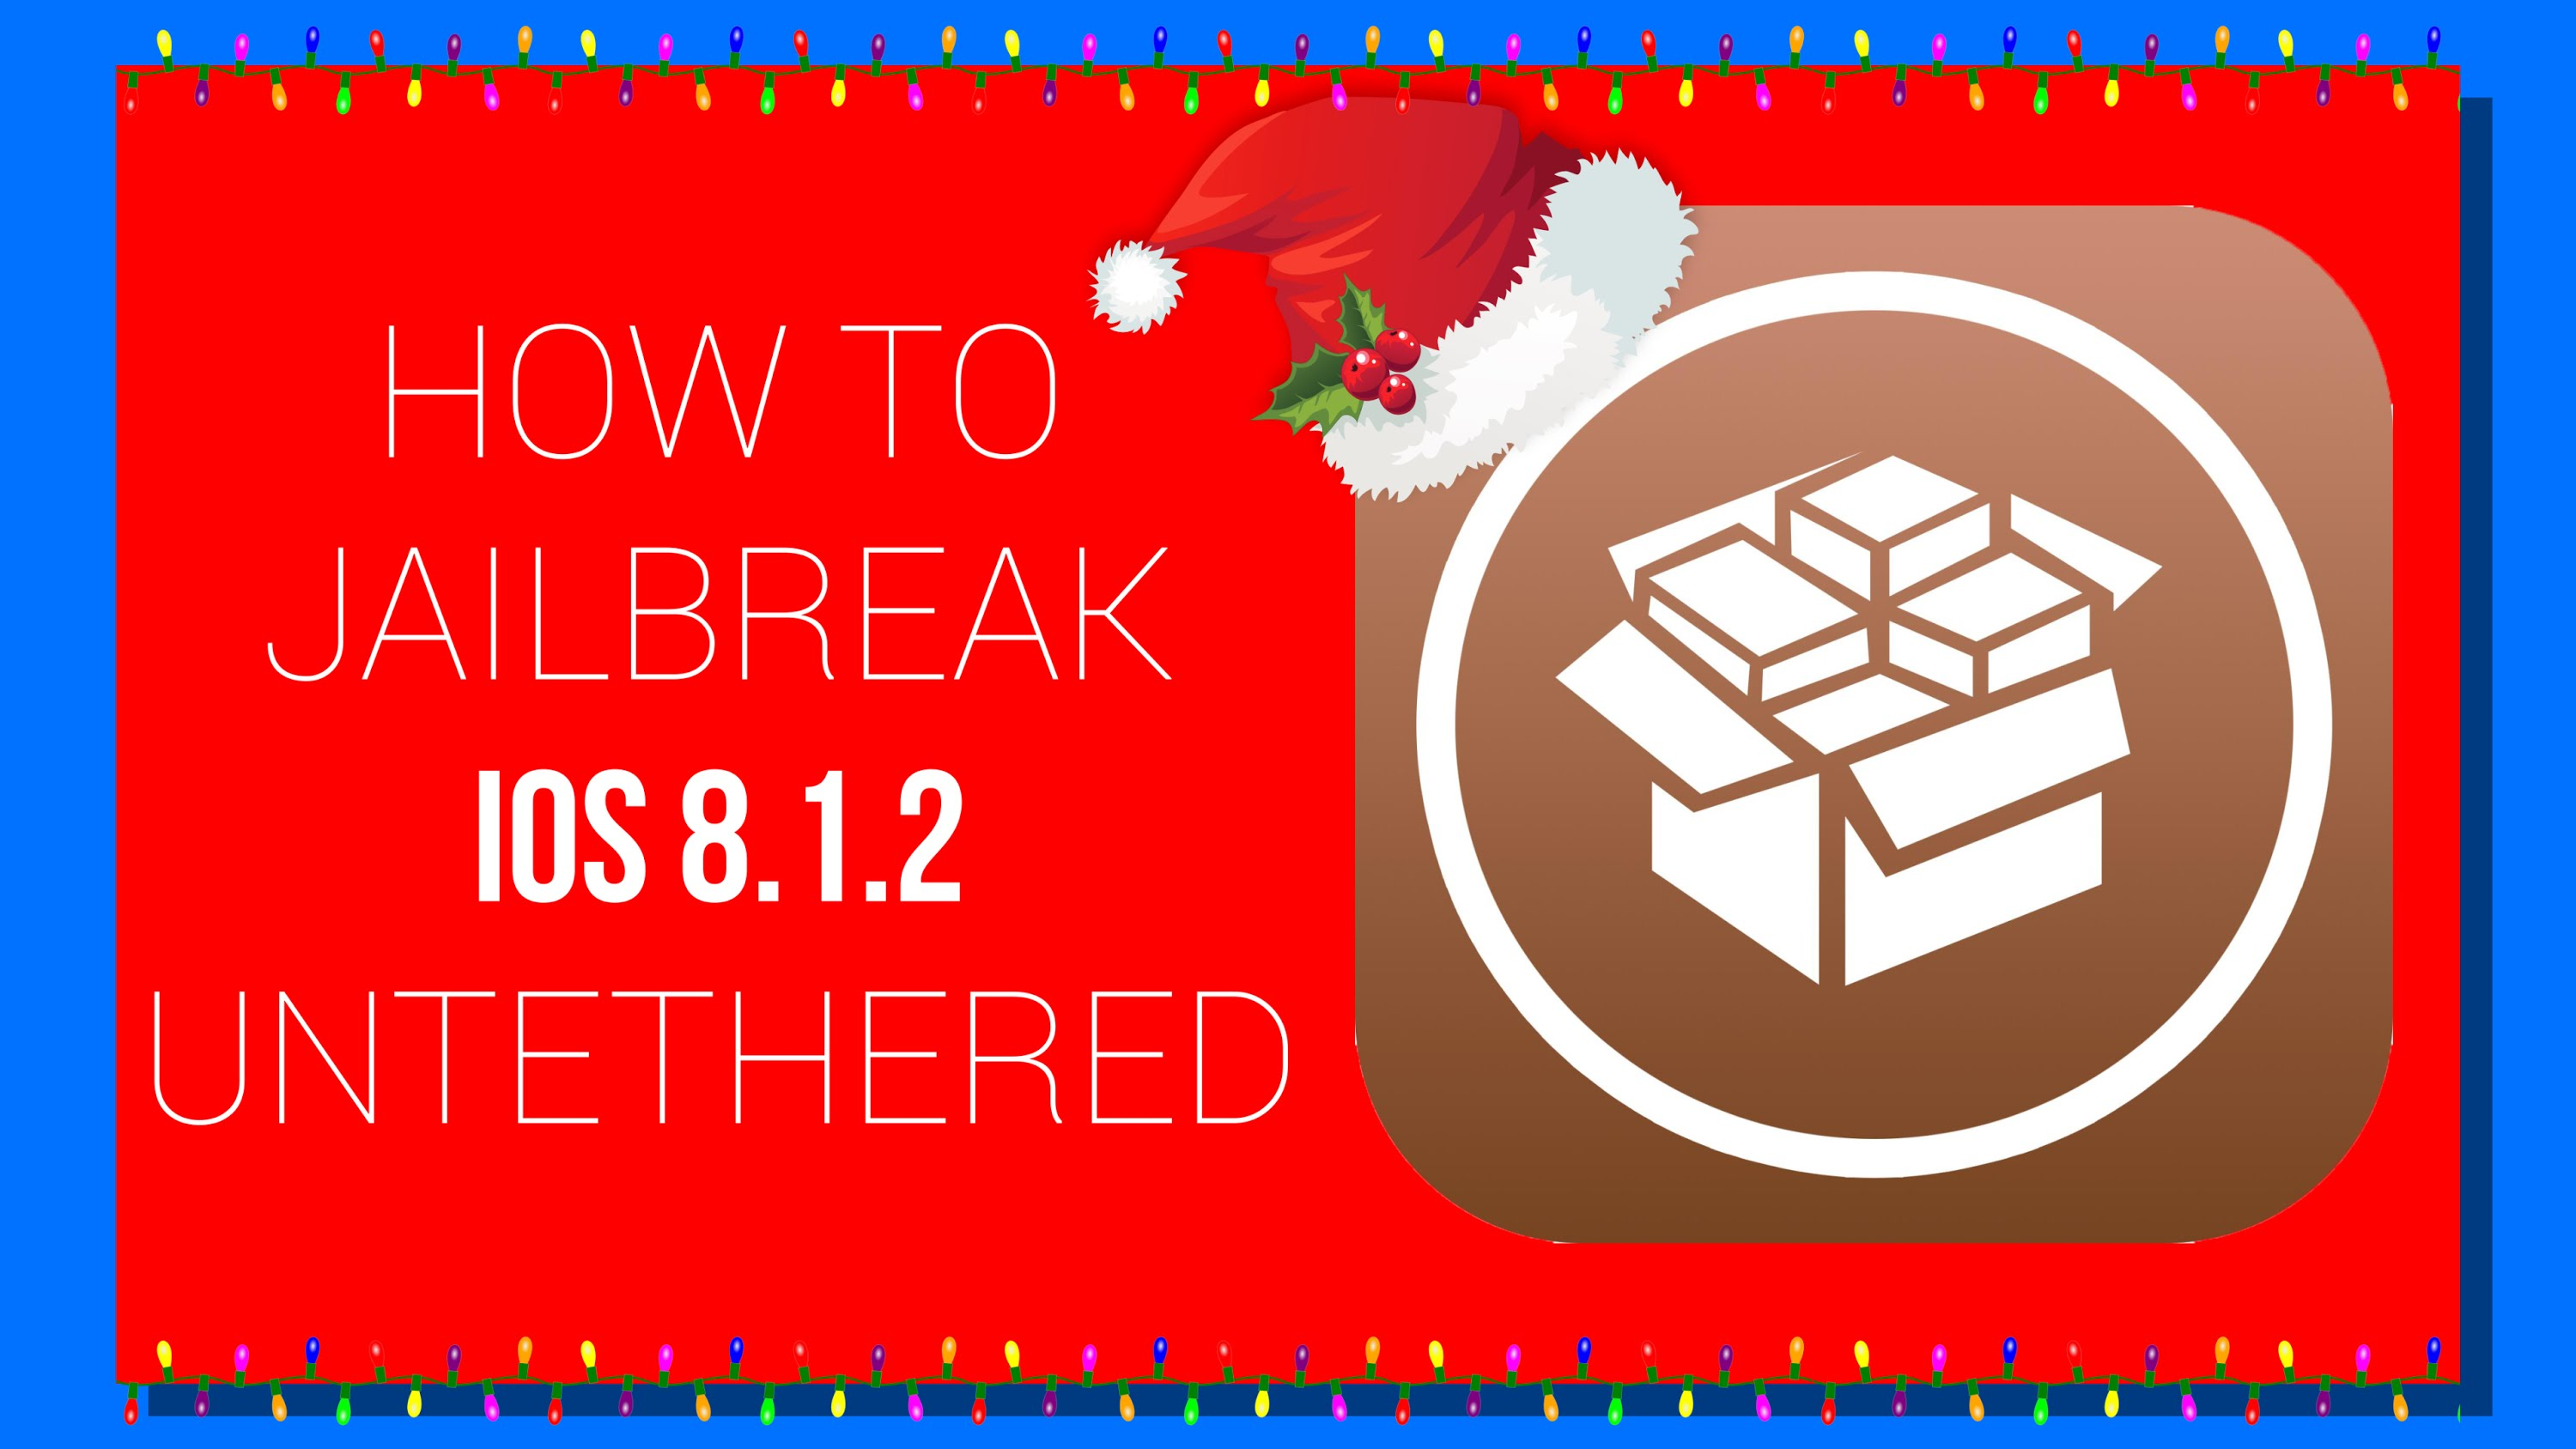 HOW TO: Jailbreak iOS 8.1.2 Untethered!